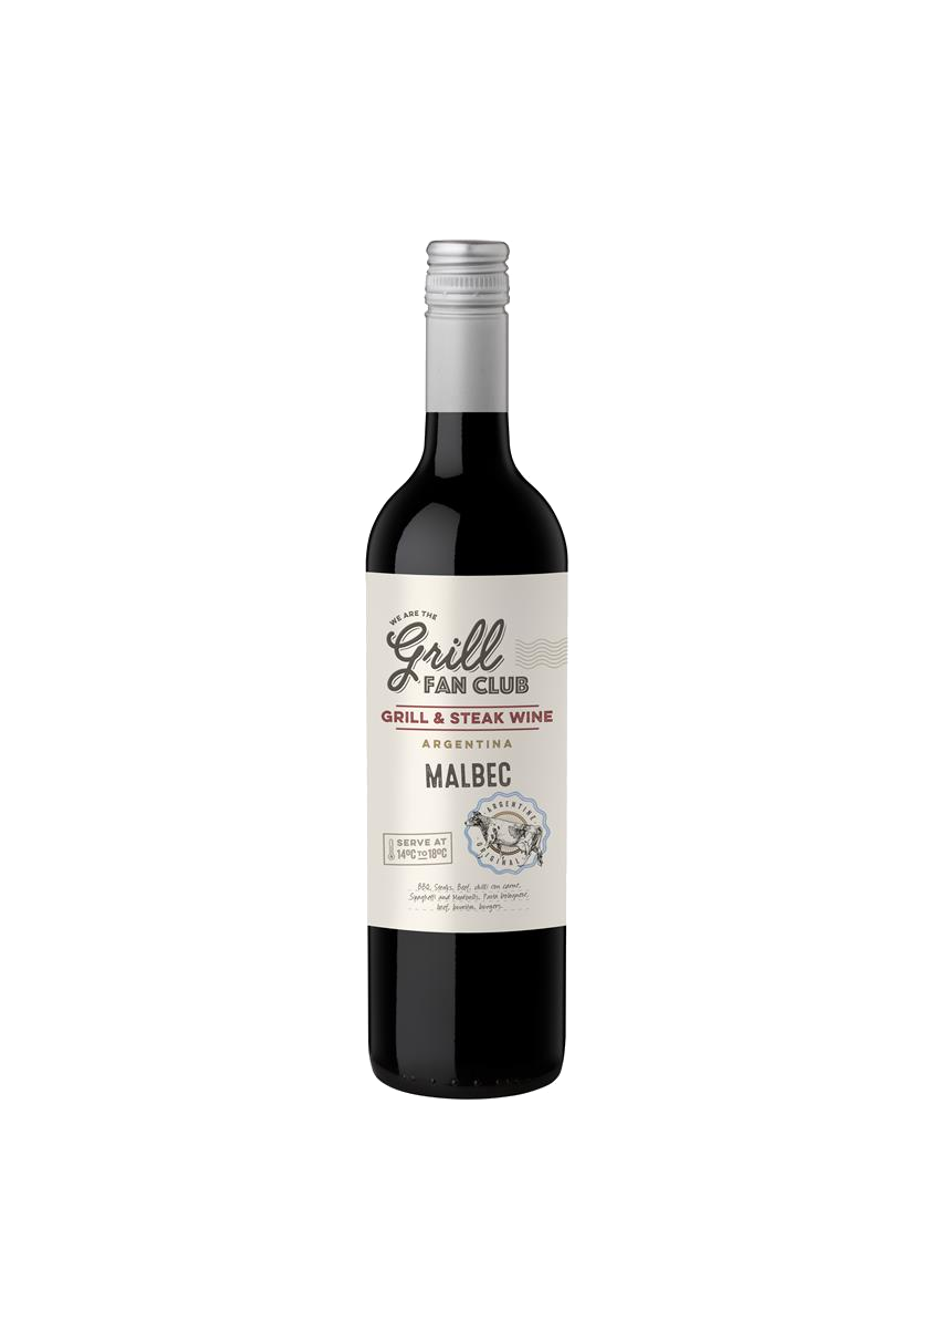 The Grill Master Fan Club Argentinian Malbec 2017